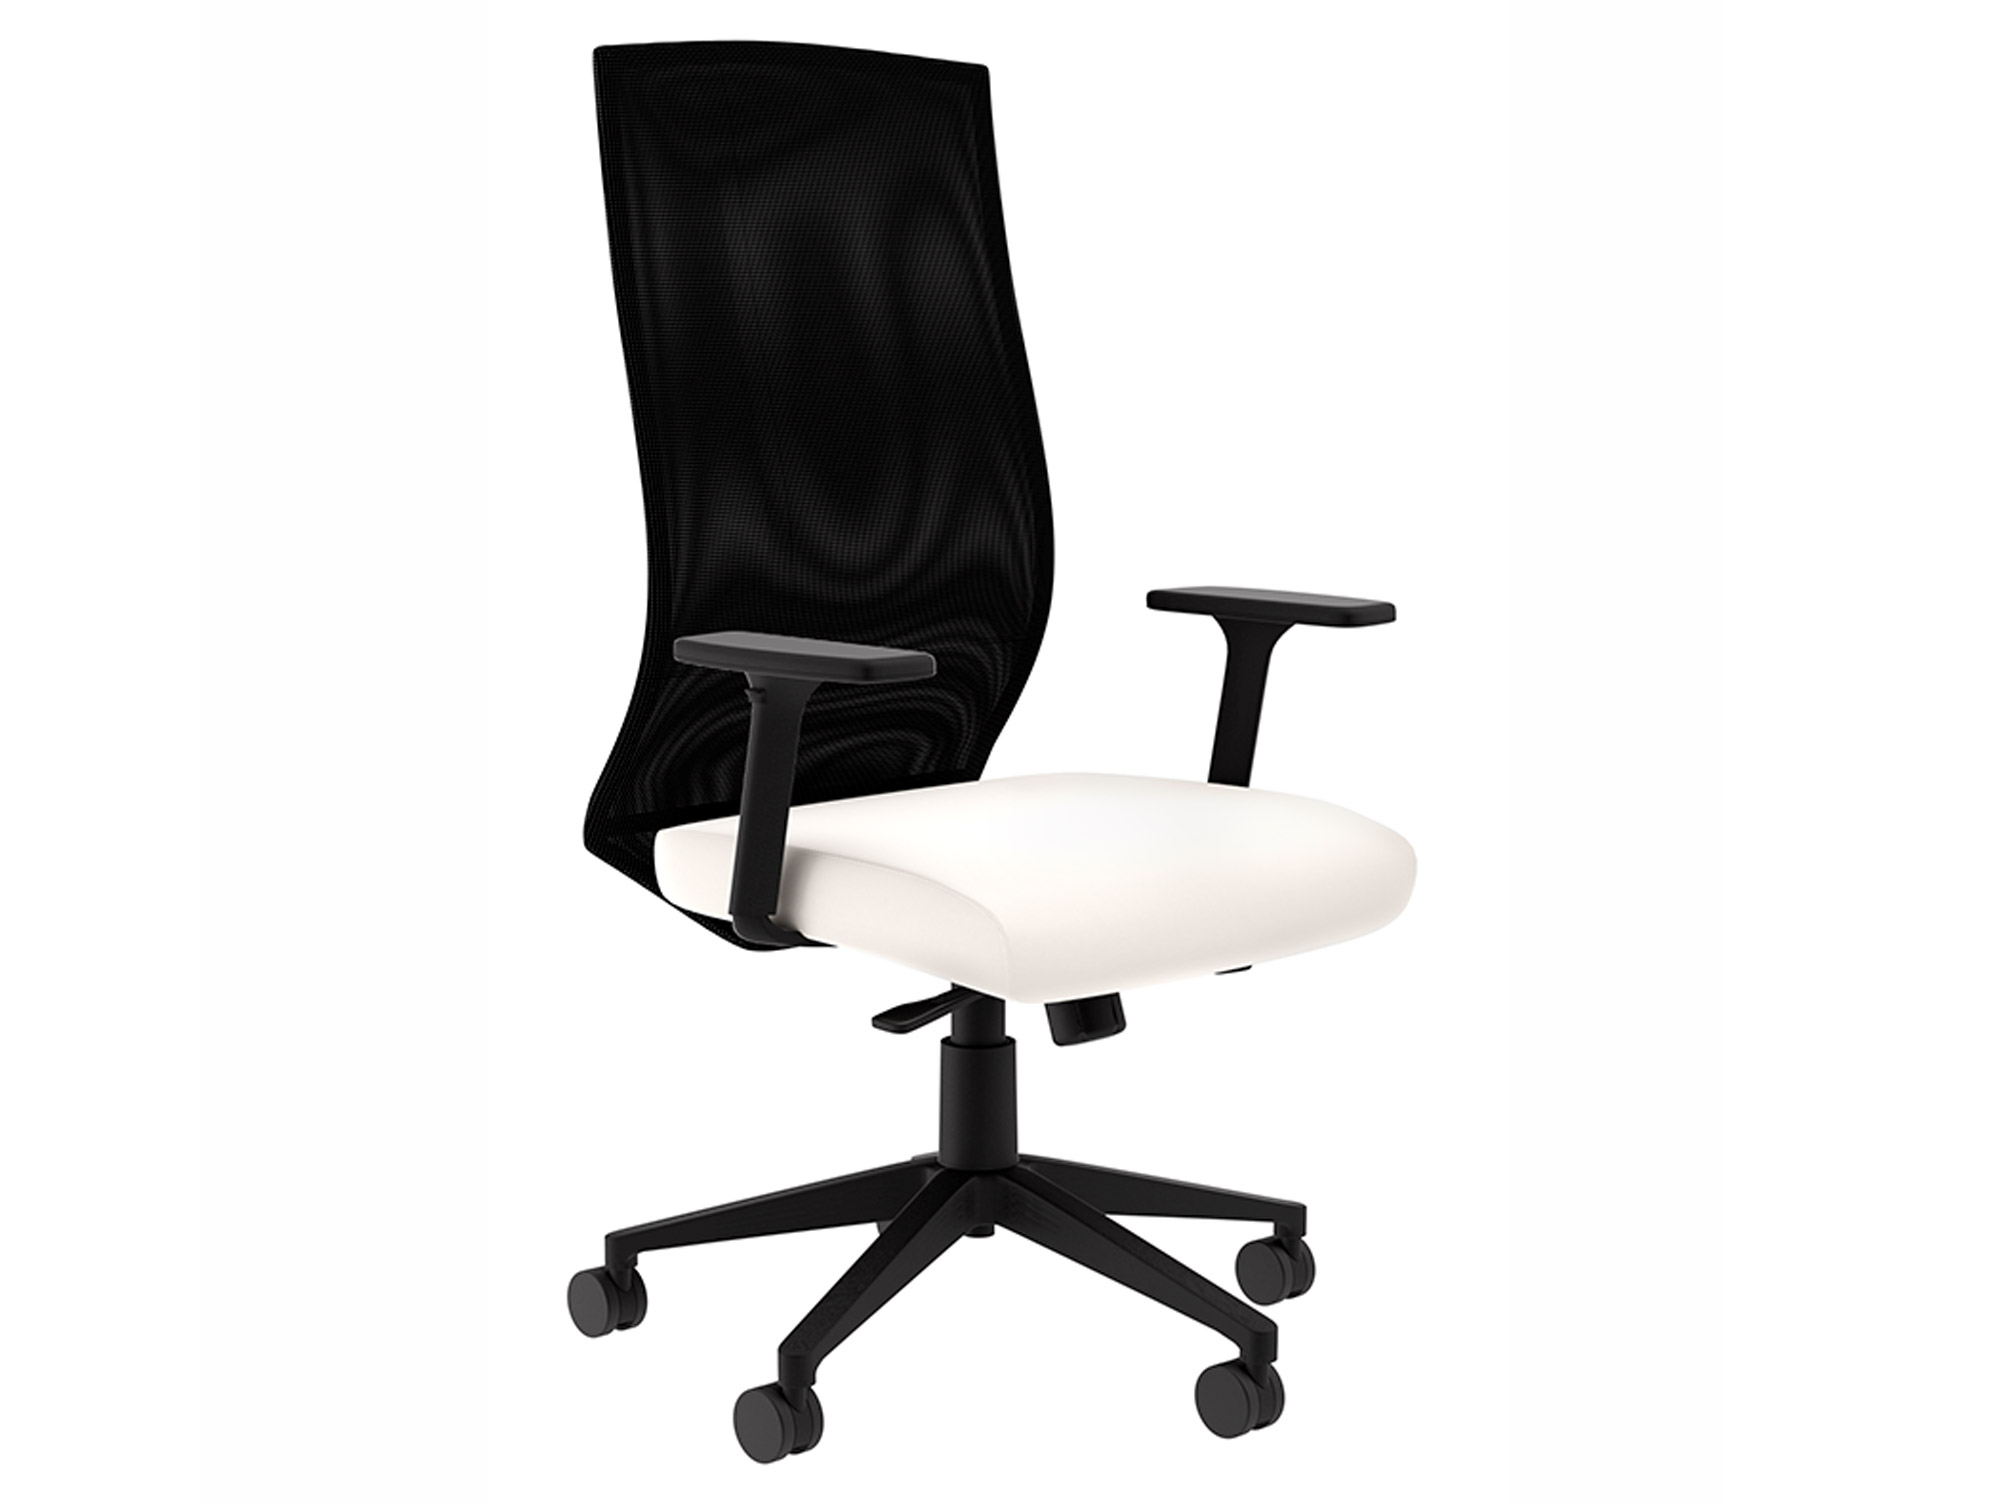 Chairs For Office #CEV-7260-B-TA-MB